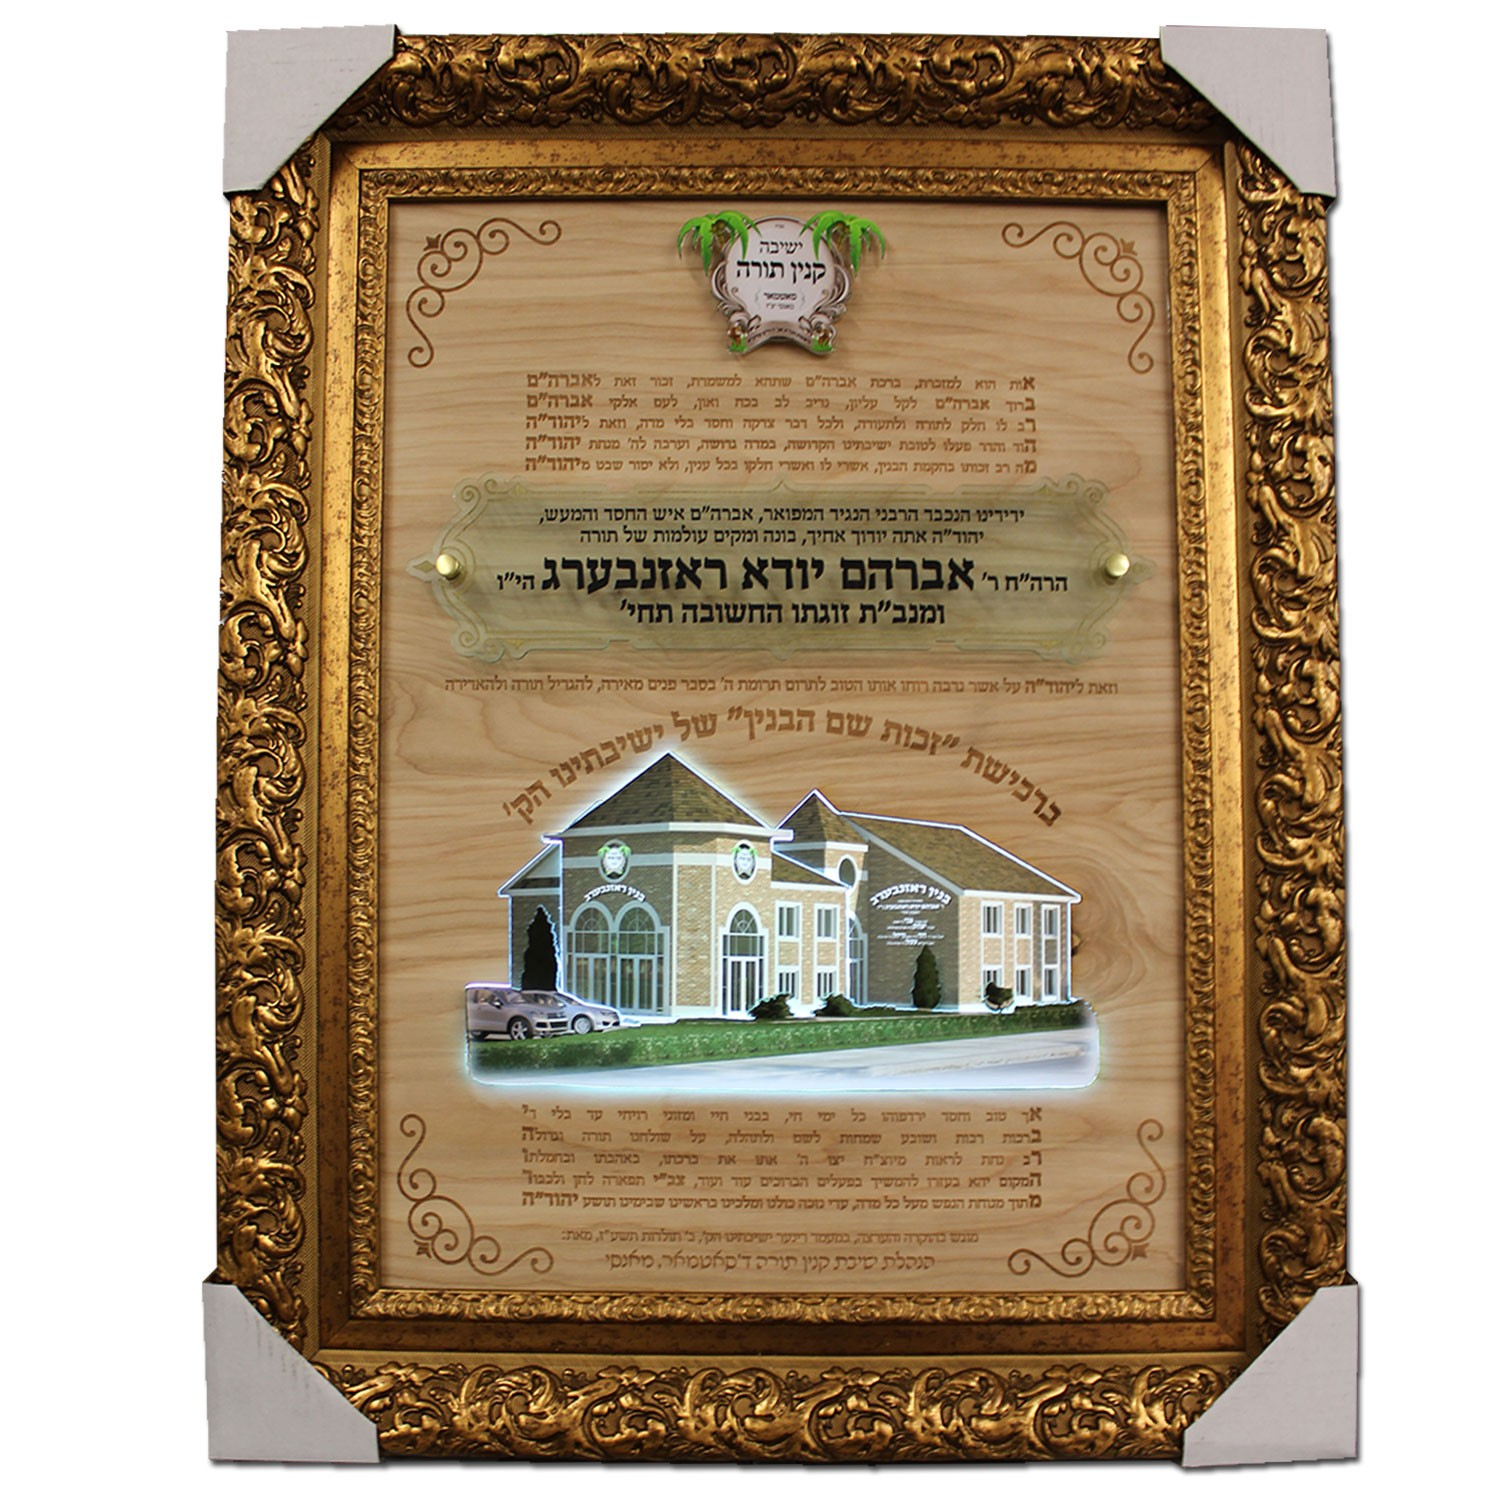 Sterlion-Creations-Building-Donor-Plaque-LED